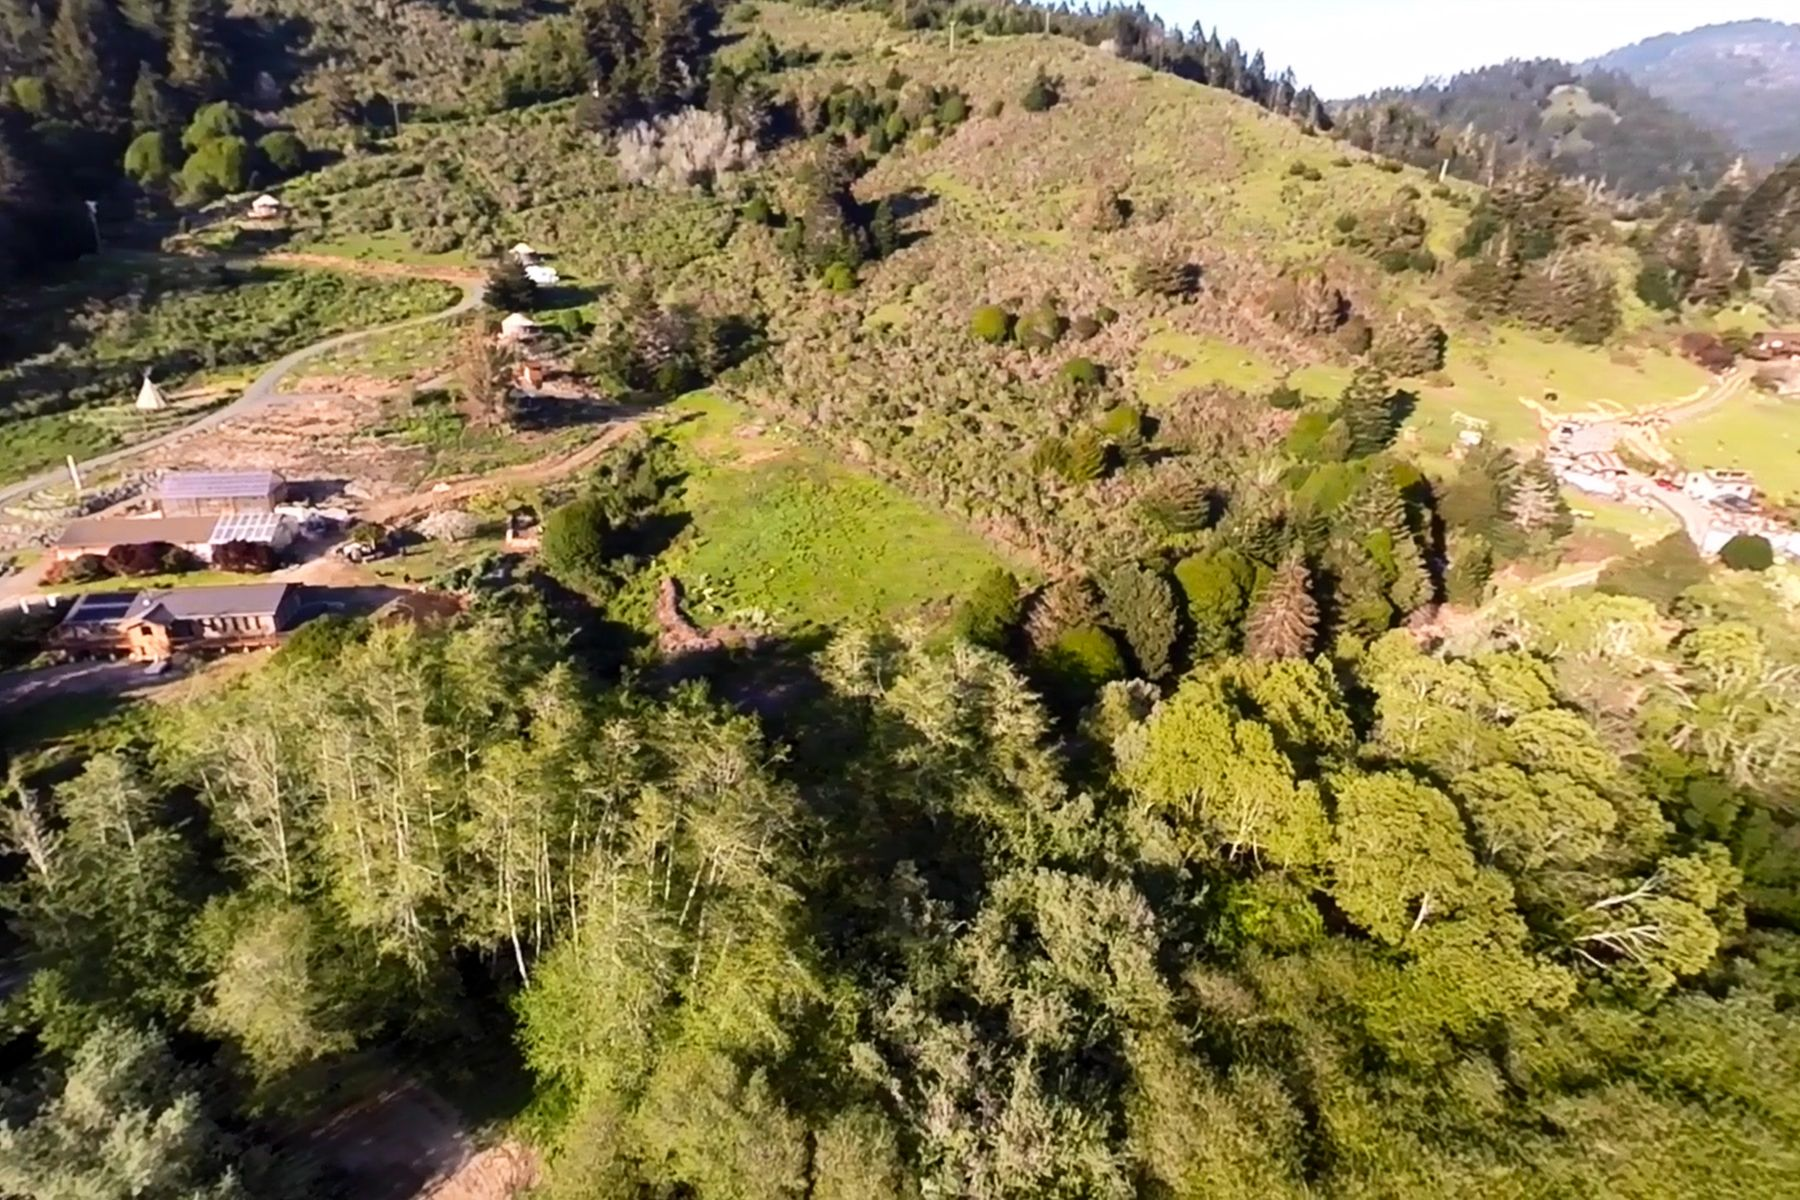 Vineyard Real Estate for Sale at 84-Acre Mendocino Coast Compound 29100 Camp 2 10 Mile Road Fort Bragg, California 95437 United States